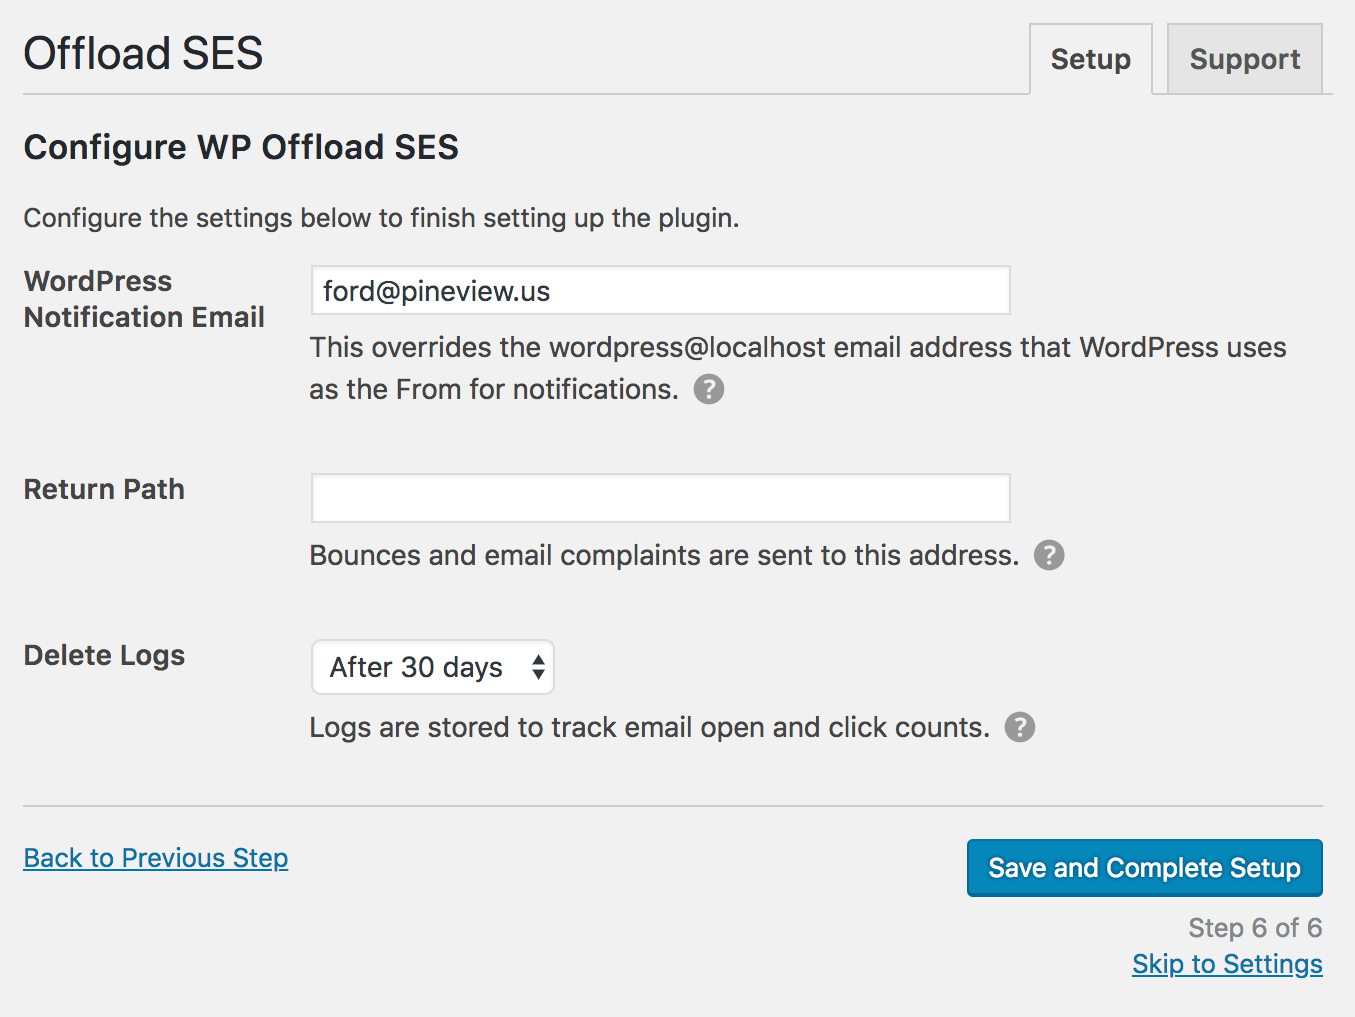 Step 6 - Configure WP Offload SES